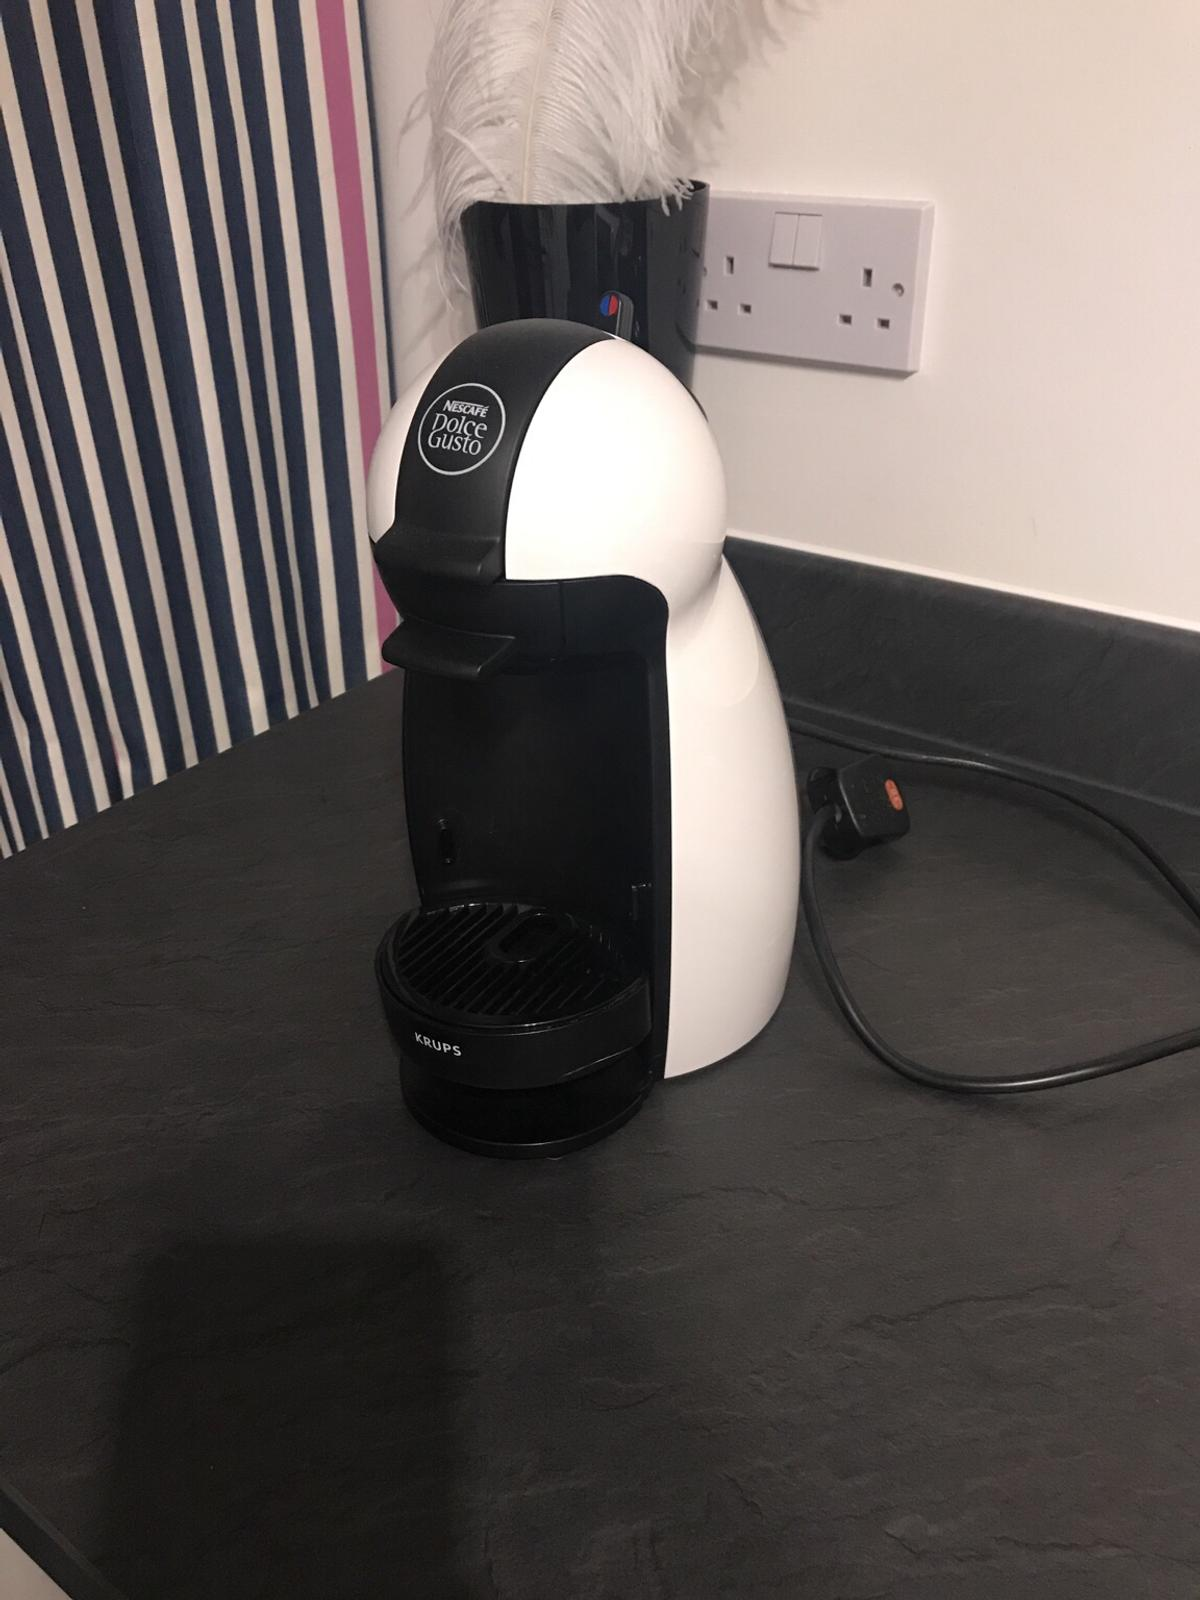 Nescafé Dolce Gusto machine Good condition, hardly used